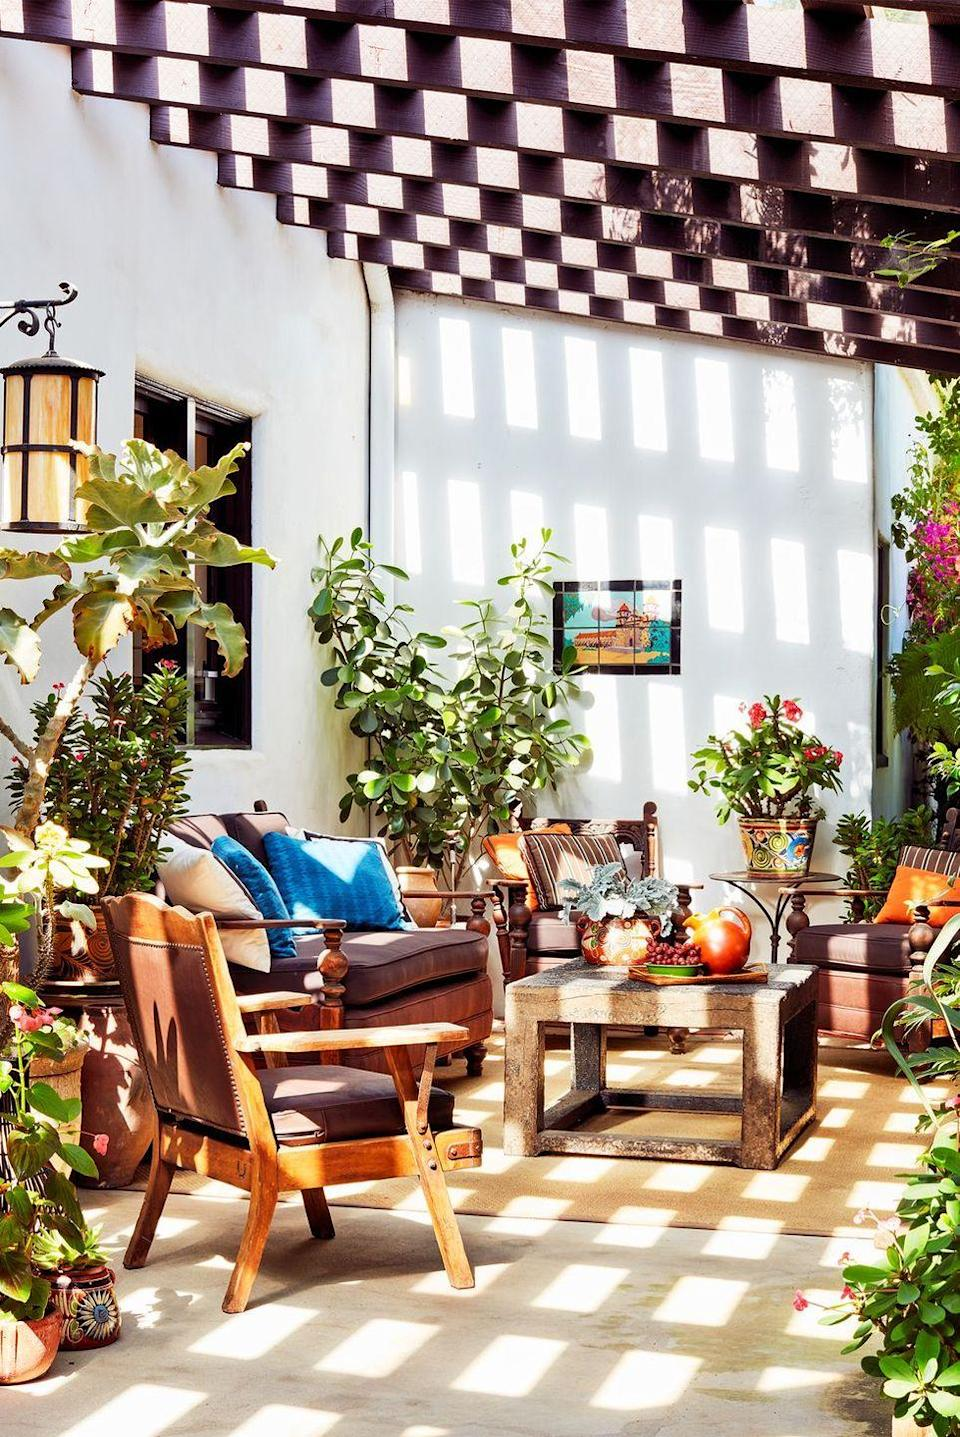 """<p>This outdoor area of a <a href=""""https://www.housebeautiful.com/design-inspiration/house-tours/a31136302/madeleine-stuart-los-angeles-home-tour/"""" rel=""""nofollow noopener"""" target=""""_blank"""" data-ylk=""""slk:SoCal home"""" class=""""link rapid-noclick-resp"""">SoCal home</a> by <a href=""""http://www.madelinestuart.com/"""" rel=""""nofollow noopener"""" target=""""_blank"""" data-ylk=""""slk:Madeline Stuart"""" class=""""link rapid-noclick-resp"""">Madeline Stuart</a> is filled with blooming plants like bougainvillea. Whether you add a few small potted plants, some large ones, or both, they'll easily enhance your work-from-outdoor setup. In this space, Stuart also included an area rug and seating with brown cushions to make it an extra-cozy garden oasis.</p>"""